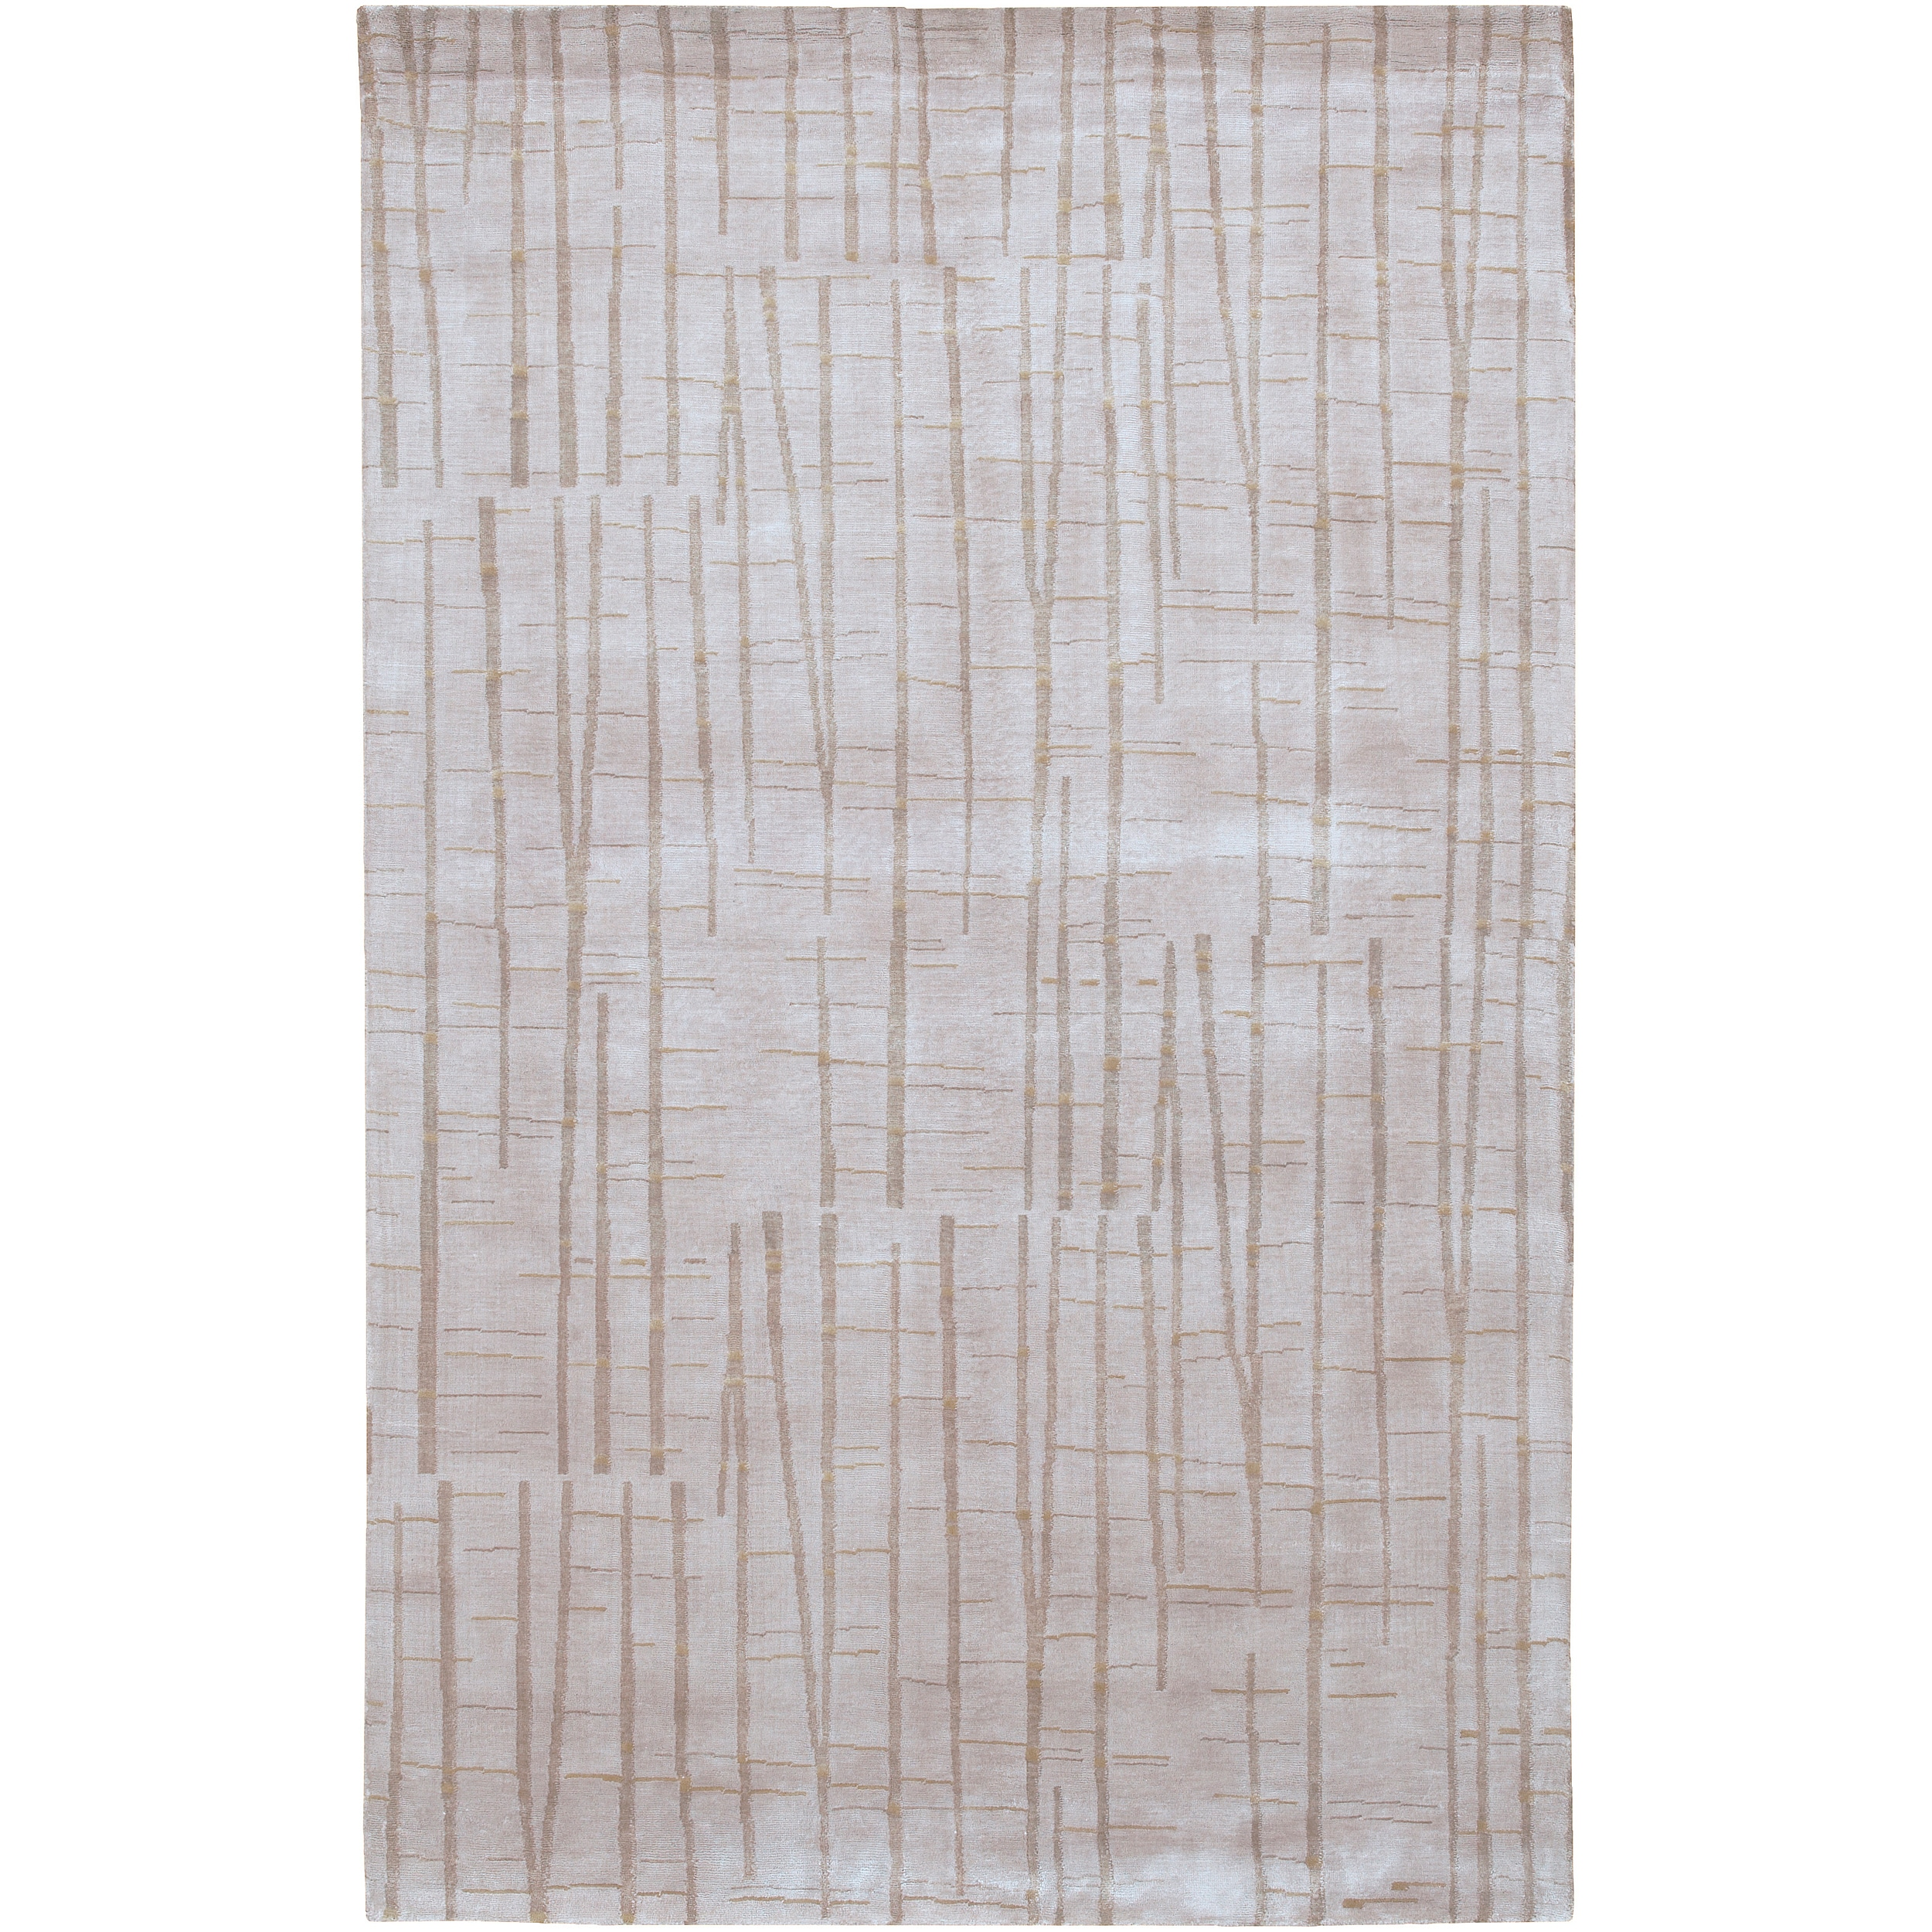 Hand-knotted Coconino Beige Abstract Design Wool Rug (5' x 8')